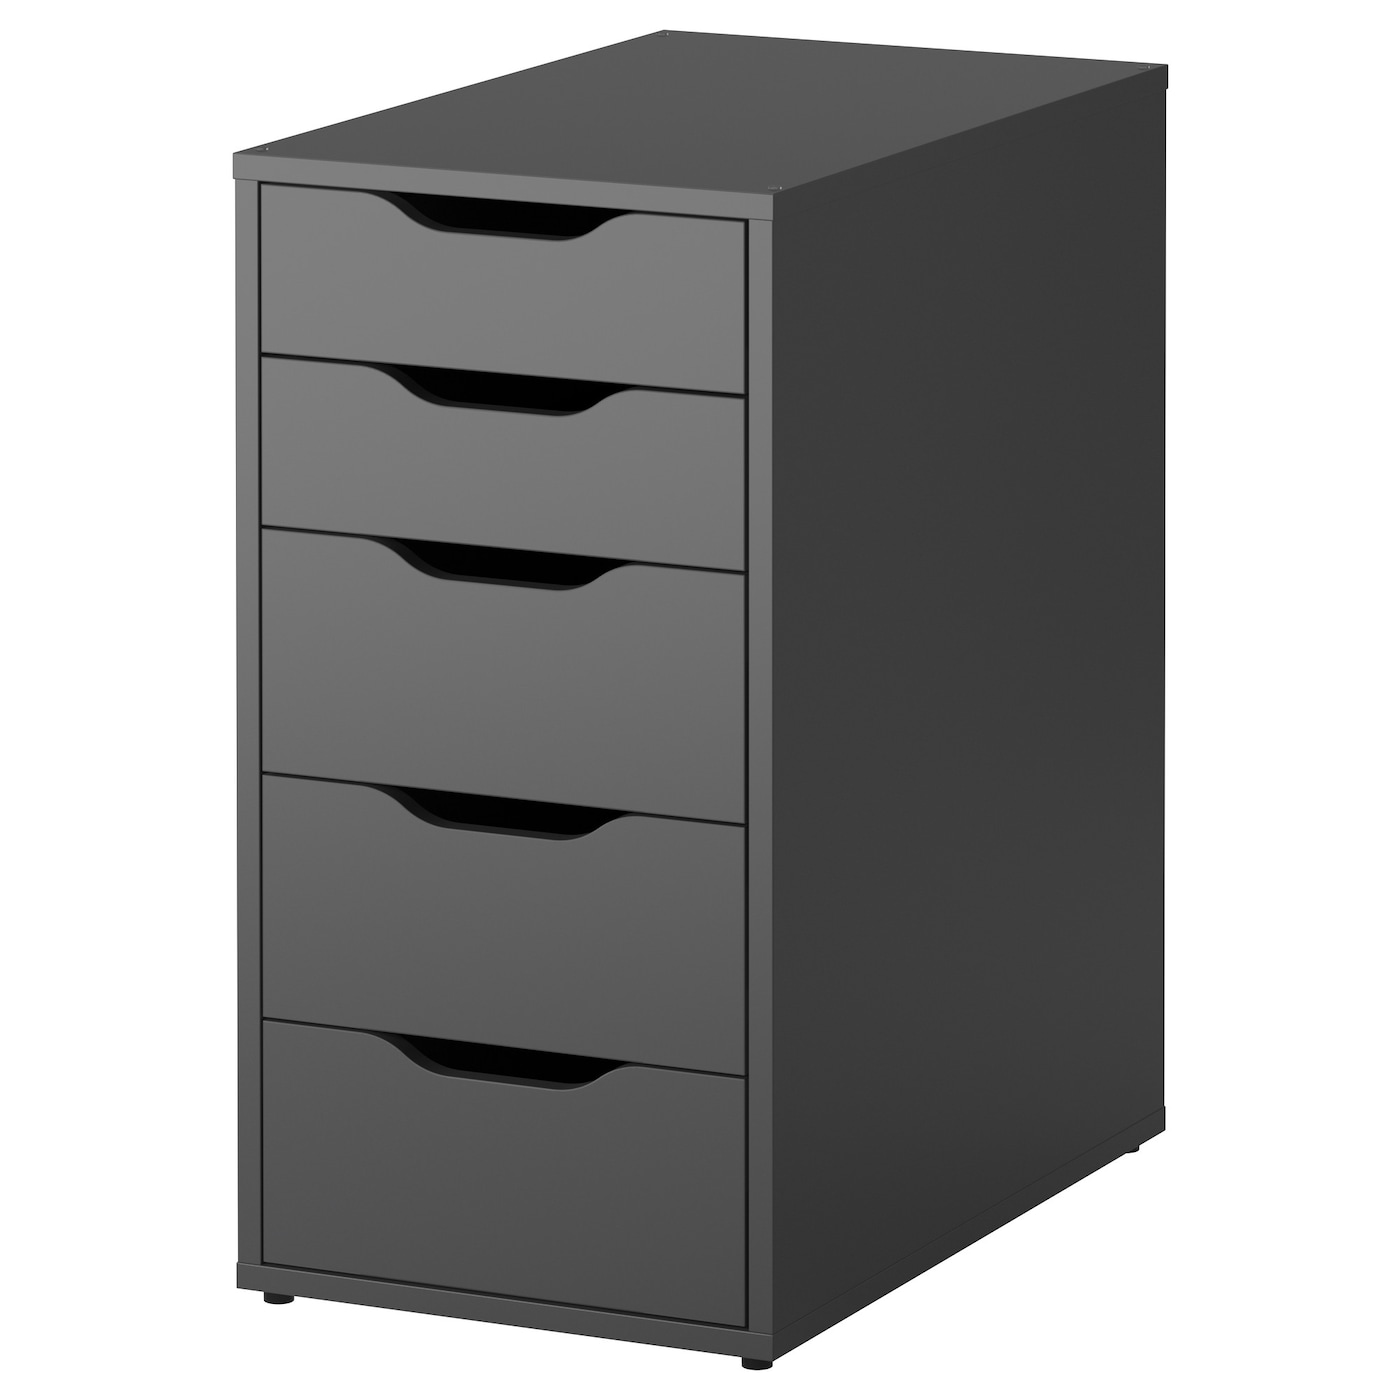 IKEA ALEX drawer unit Drawer stops prevent the drawers from being pulled out too far.